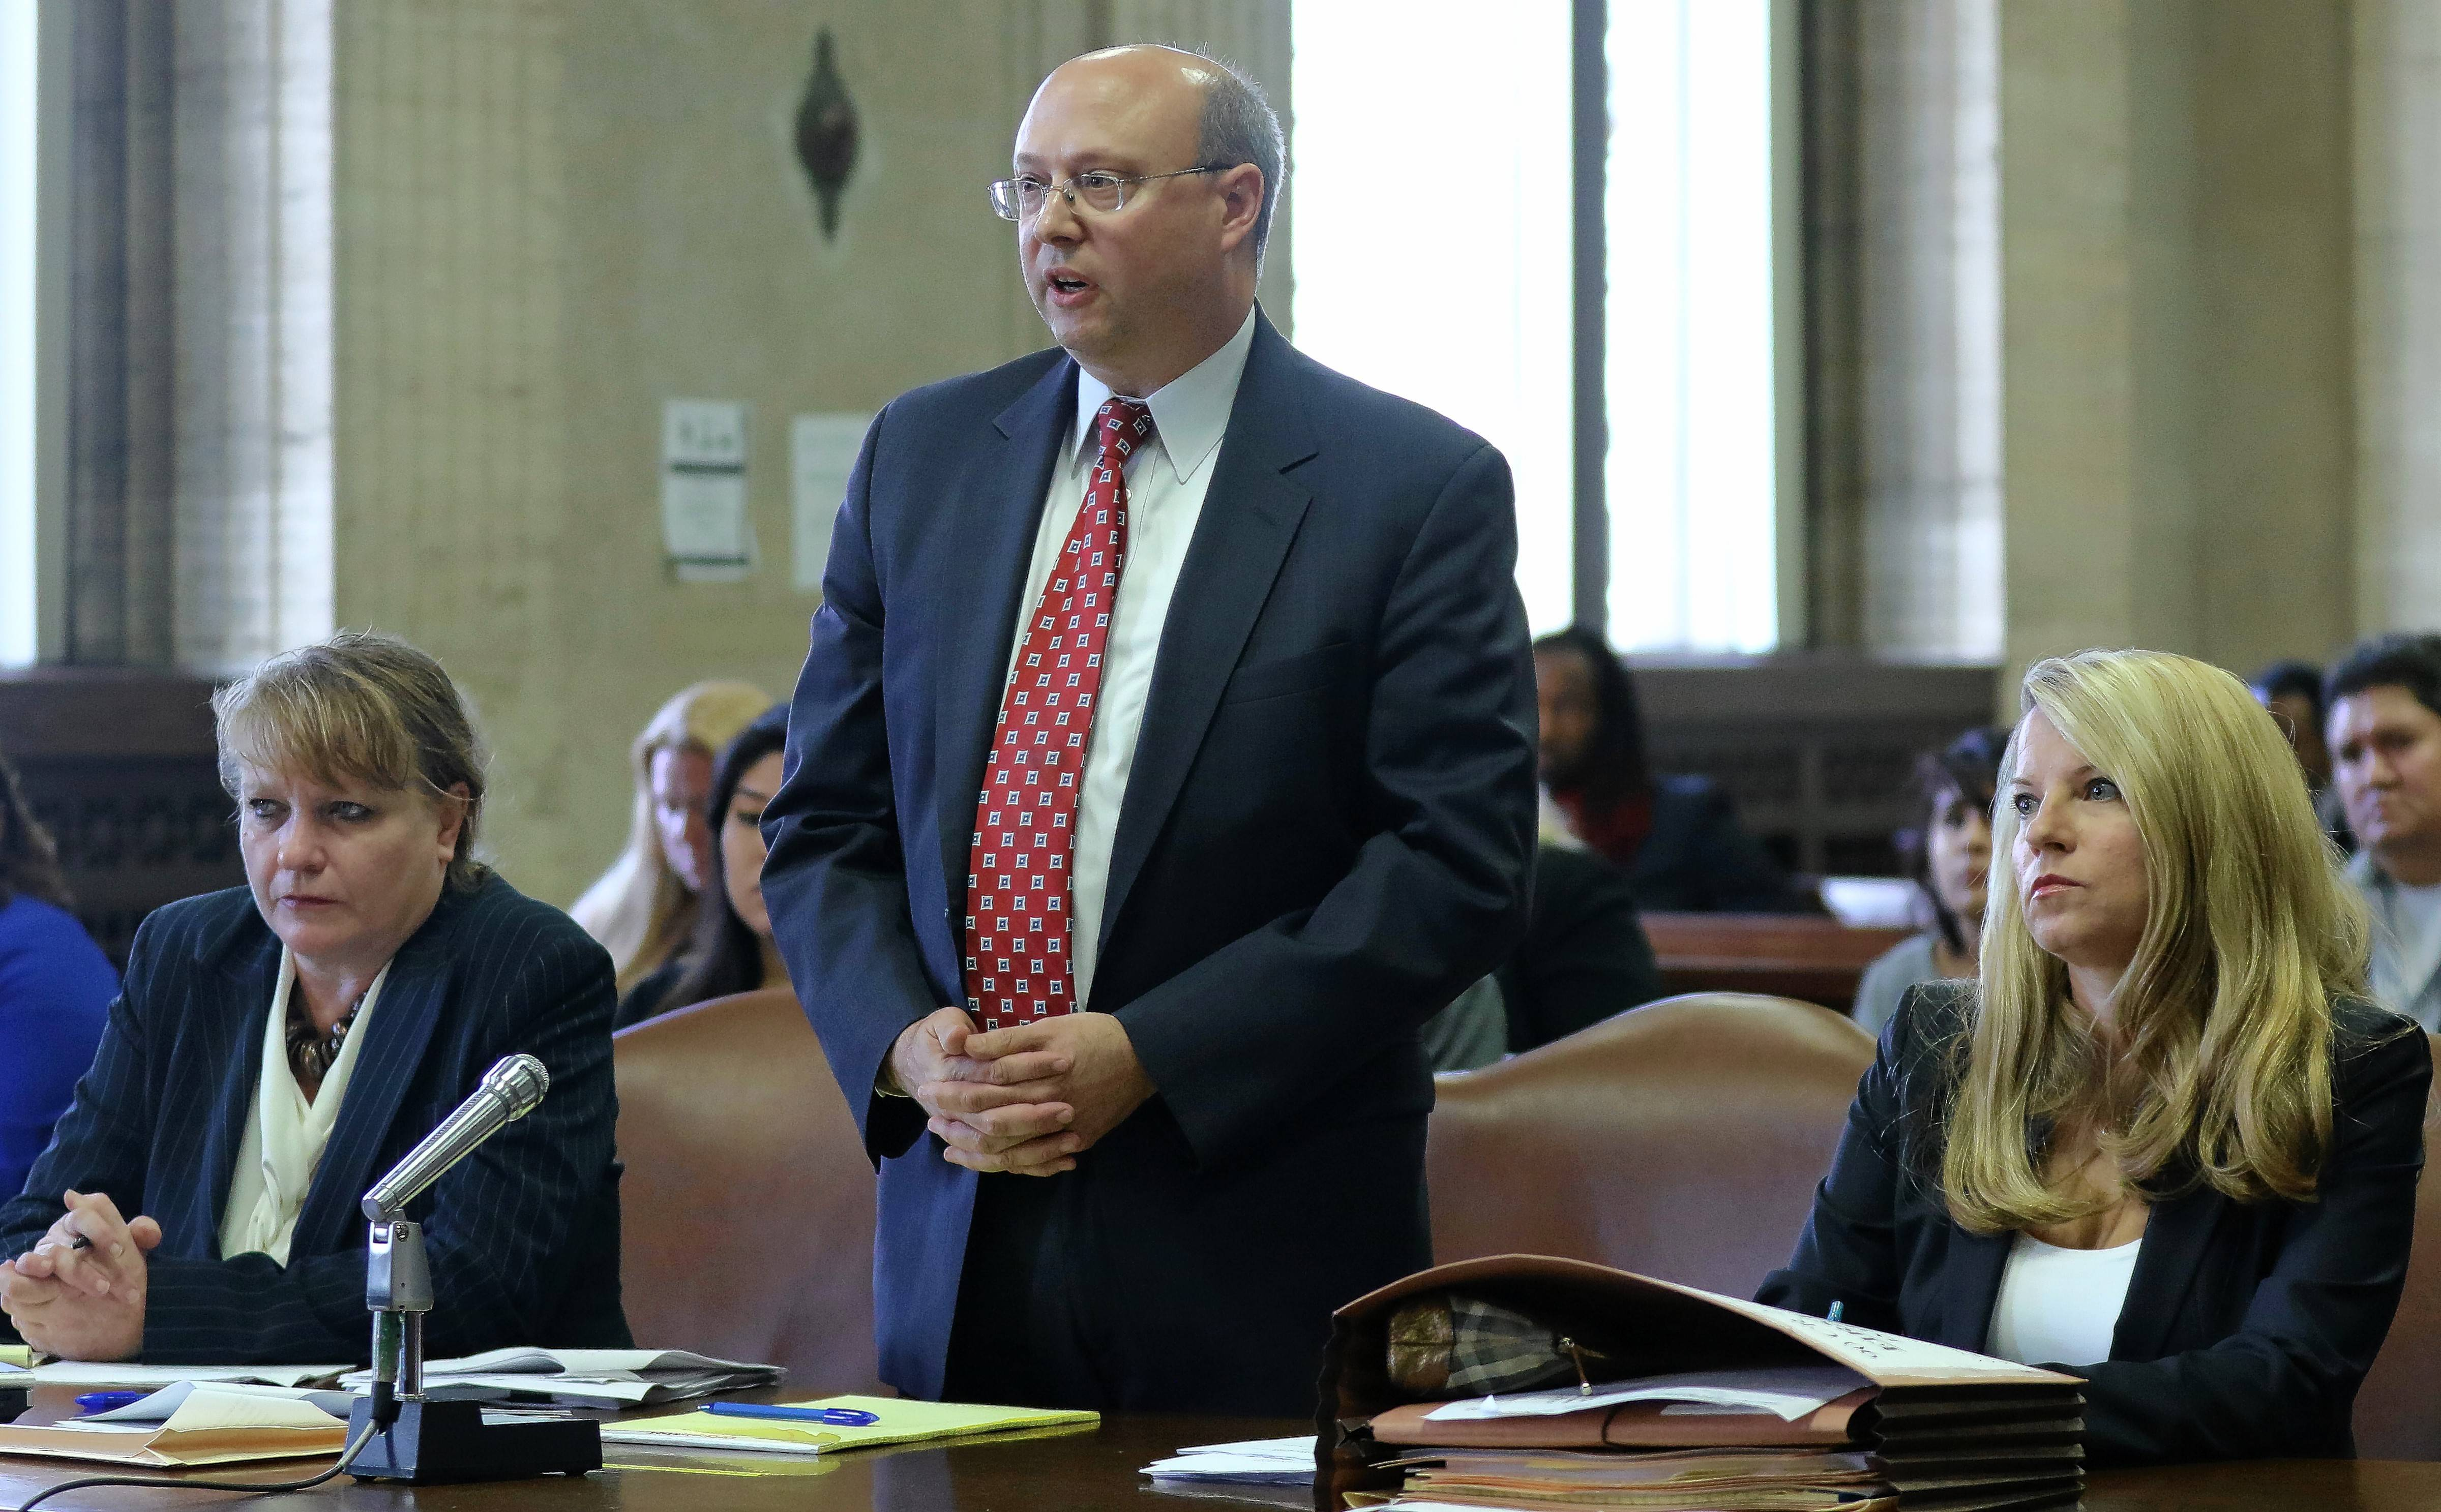 Cook County assistant state's attorney Alan Spellberg delivers arguments as fellow prosecutors Celeste Stack, left, and Jane Sack, right, listen during a hearing Nov. 5 at the Leighton Criminal Court Building in Chicago for the upcoming resentencing of David Biro.